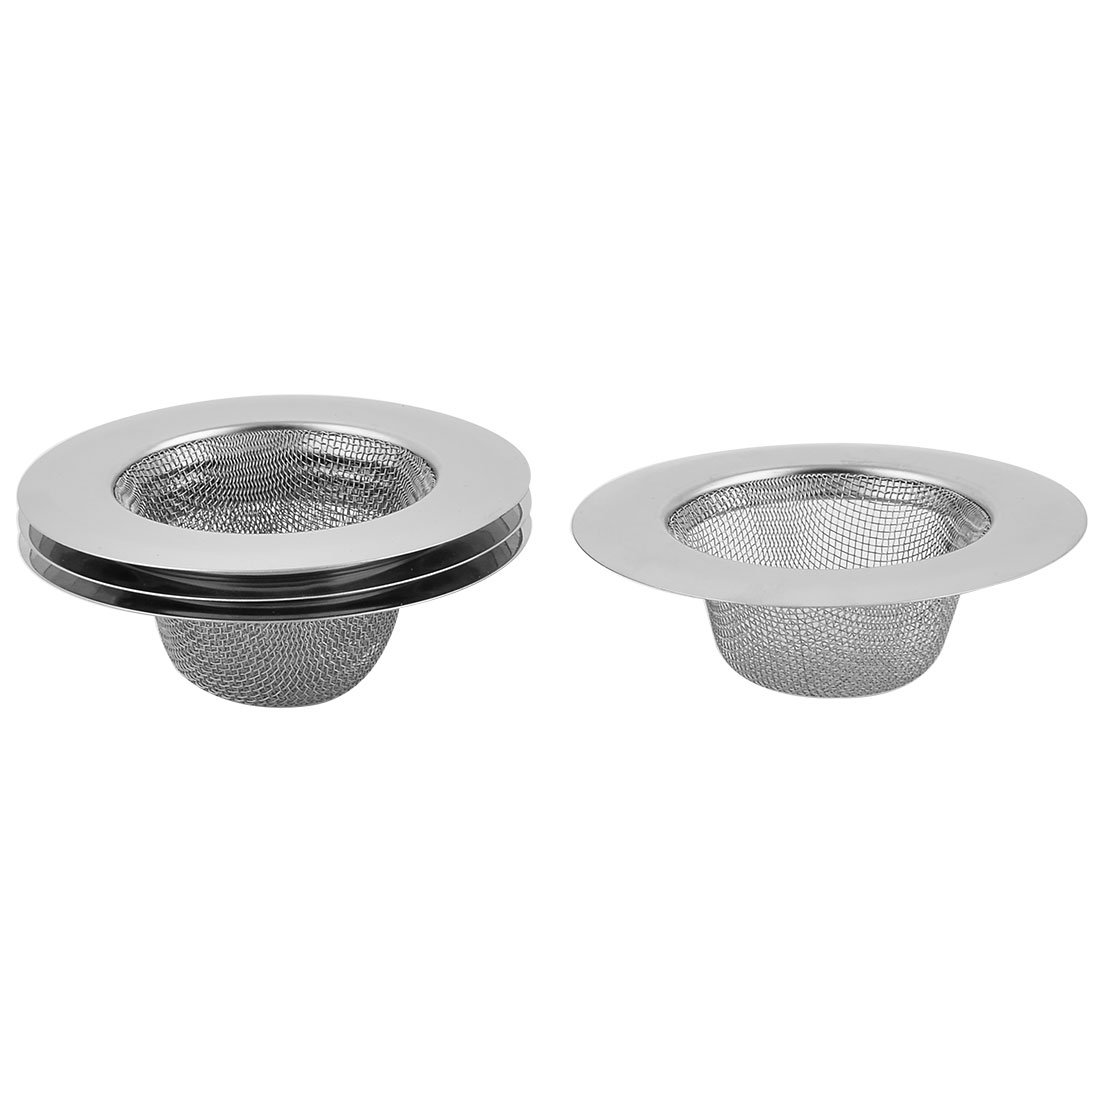 uxcell Stainless Steel Kitchen Round Shaped Sink Mesh Basket Leftover Stopper Strainer 4pcs